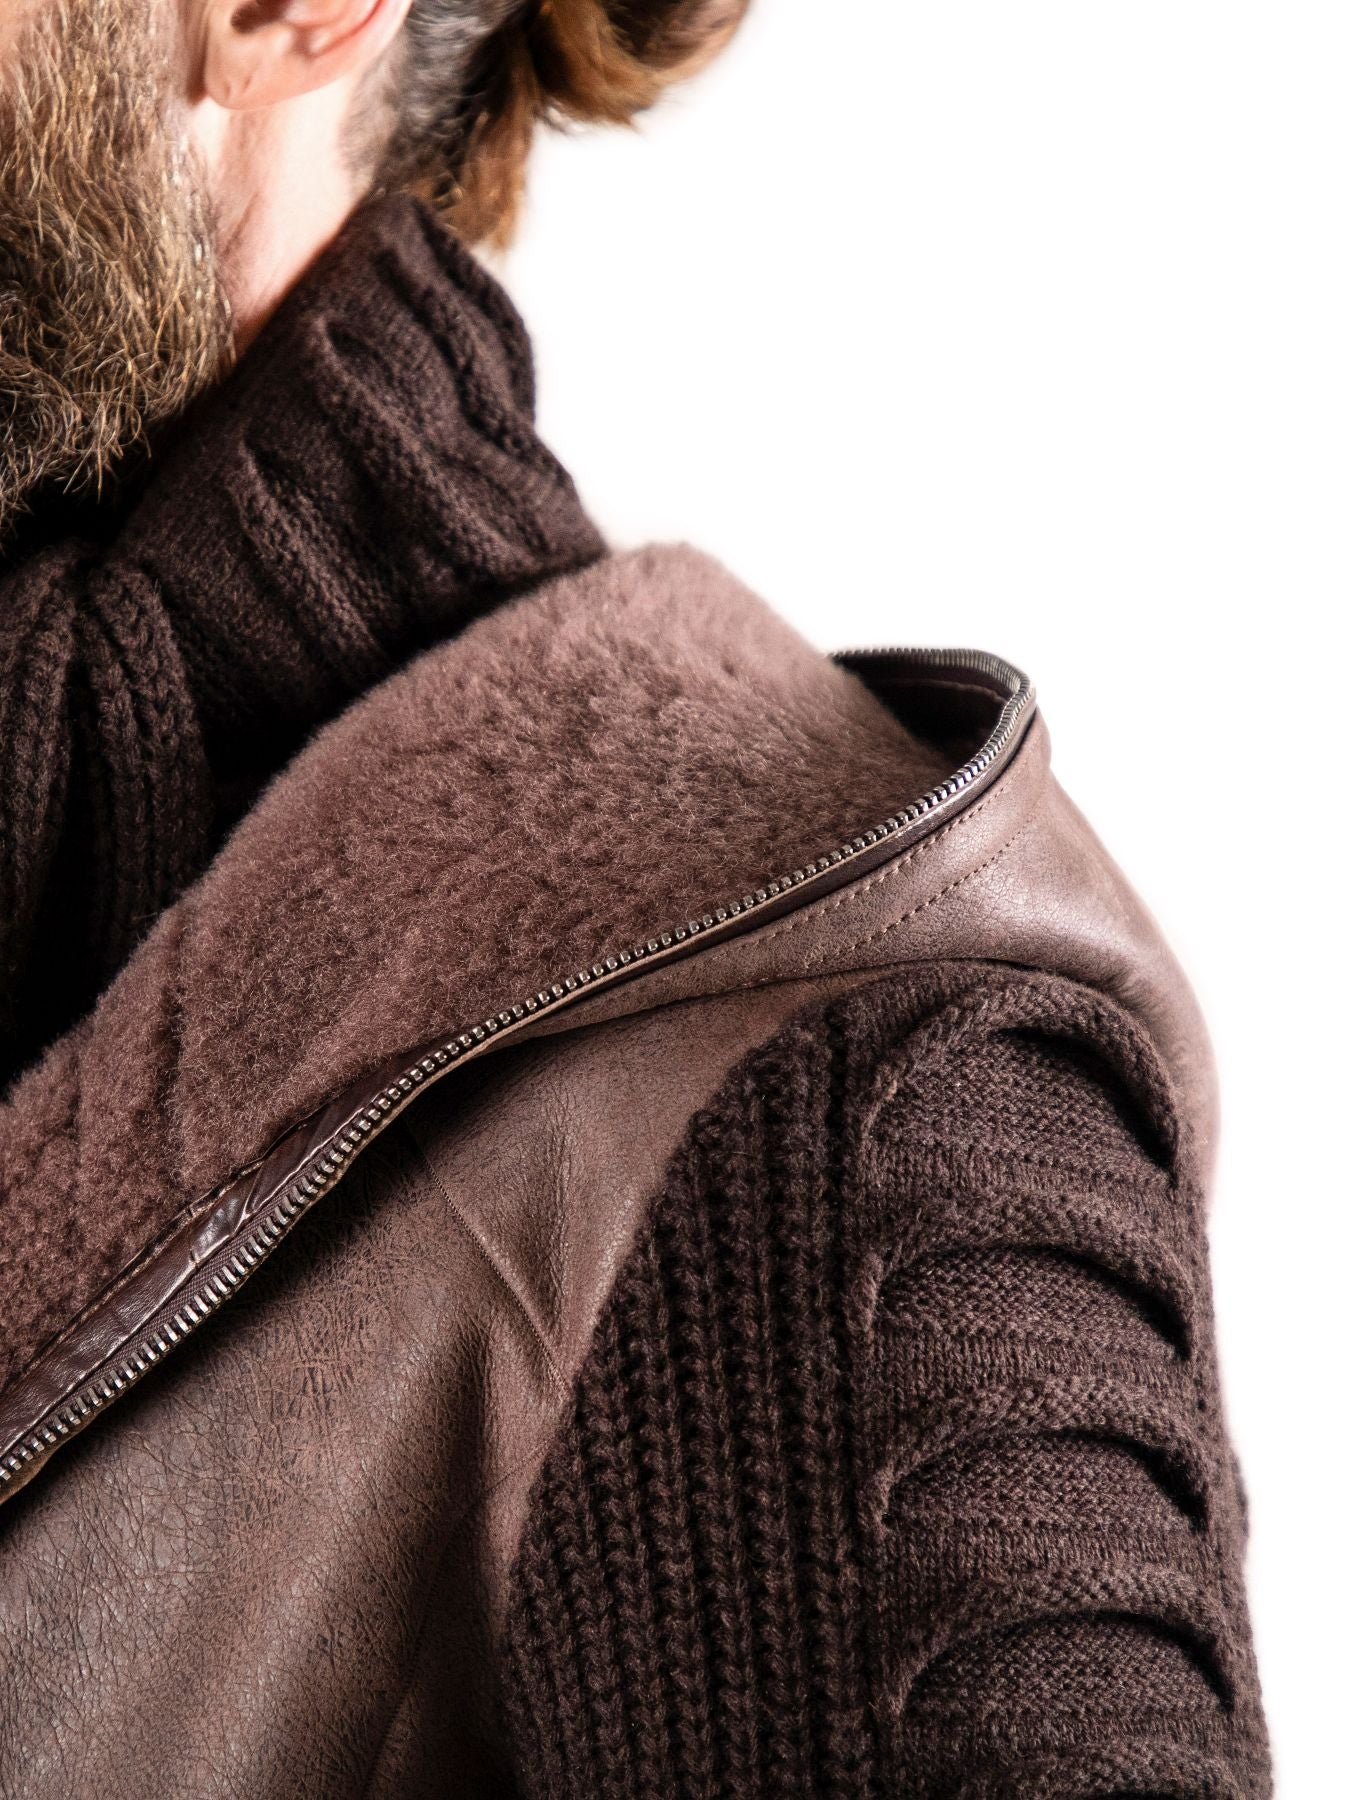 In perfect harmony, mélange cashmere sleeves emanate from an Italian shearling of impossible softness